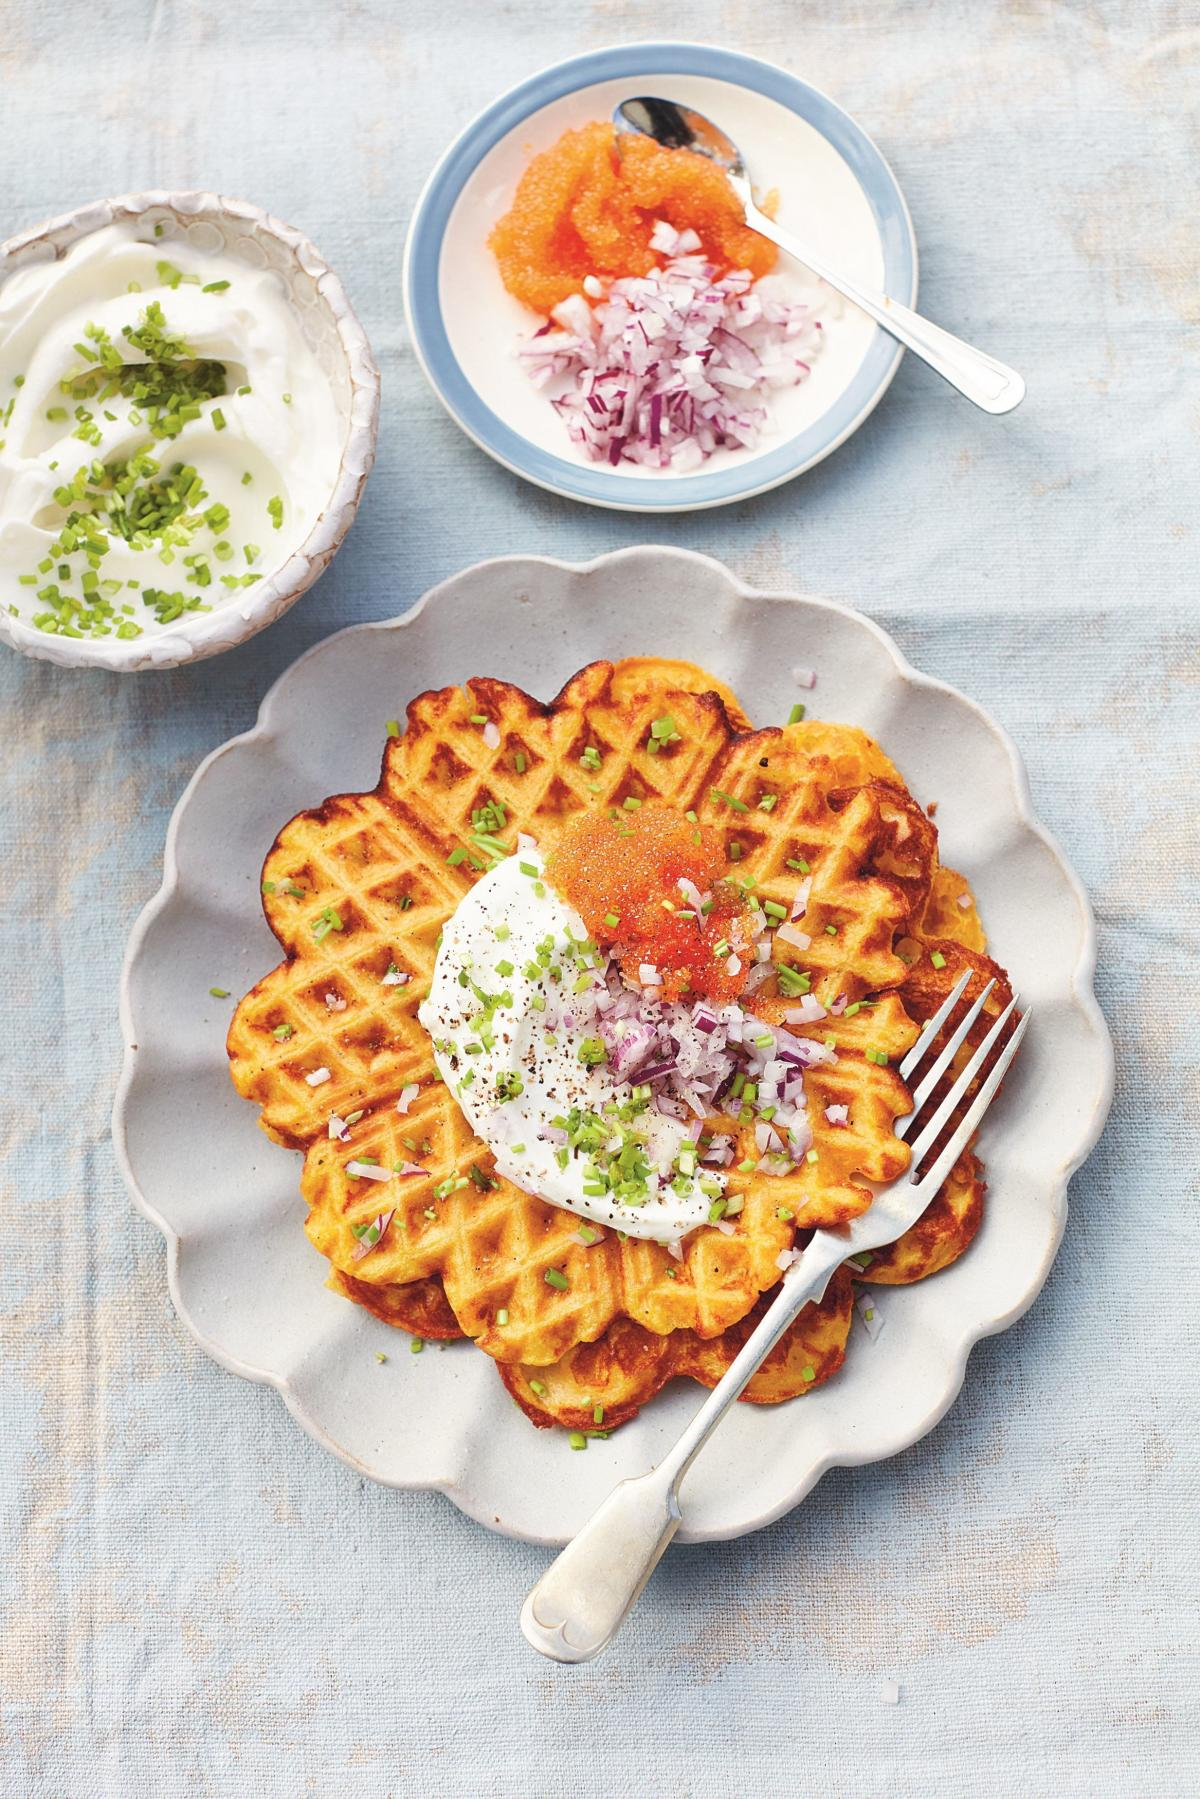 Celebrate Swedish cuisine with these new recipes by cookery writer ...